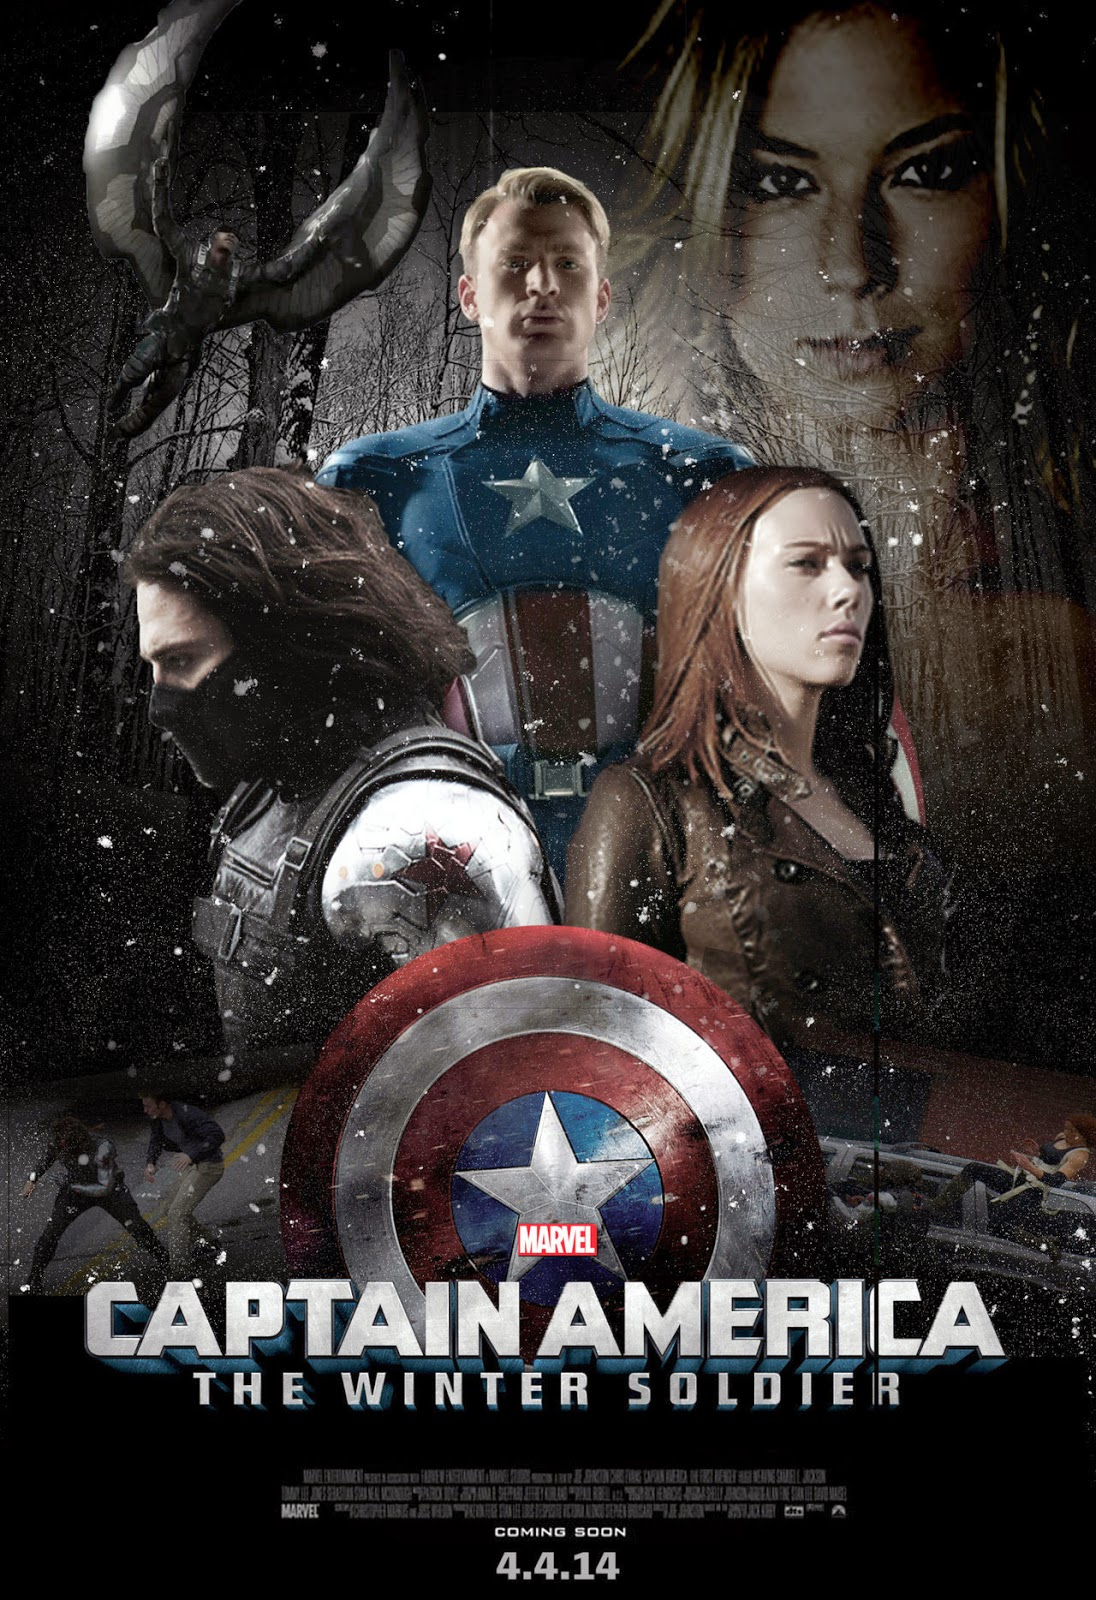 Captain america the winter soldier 2014 r1 custom | dvd covers.